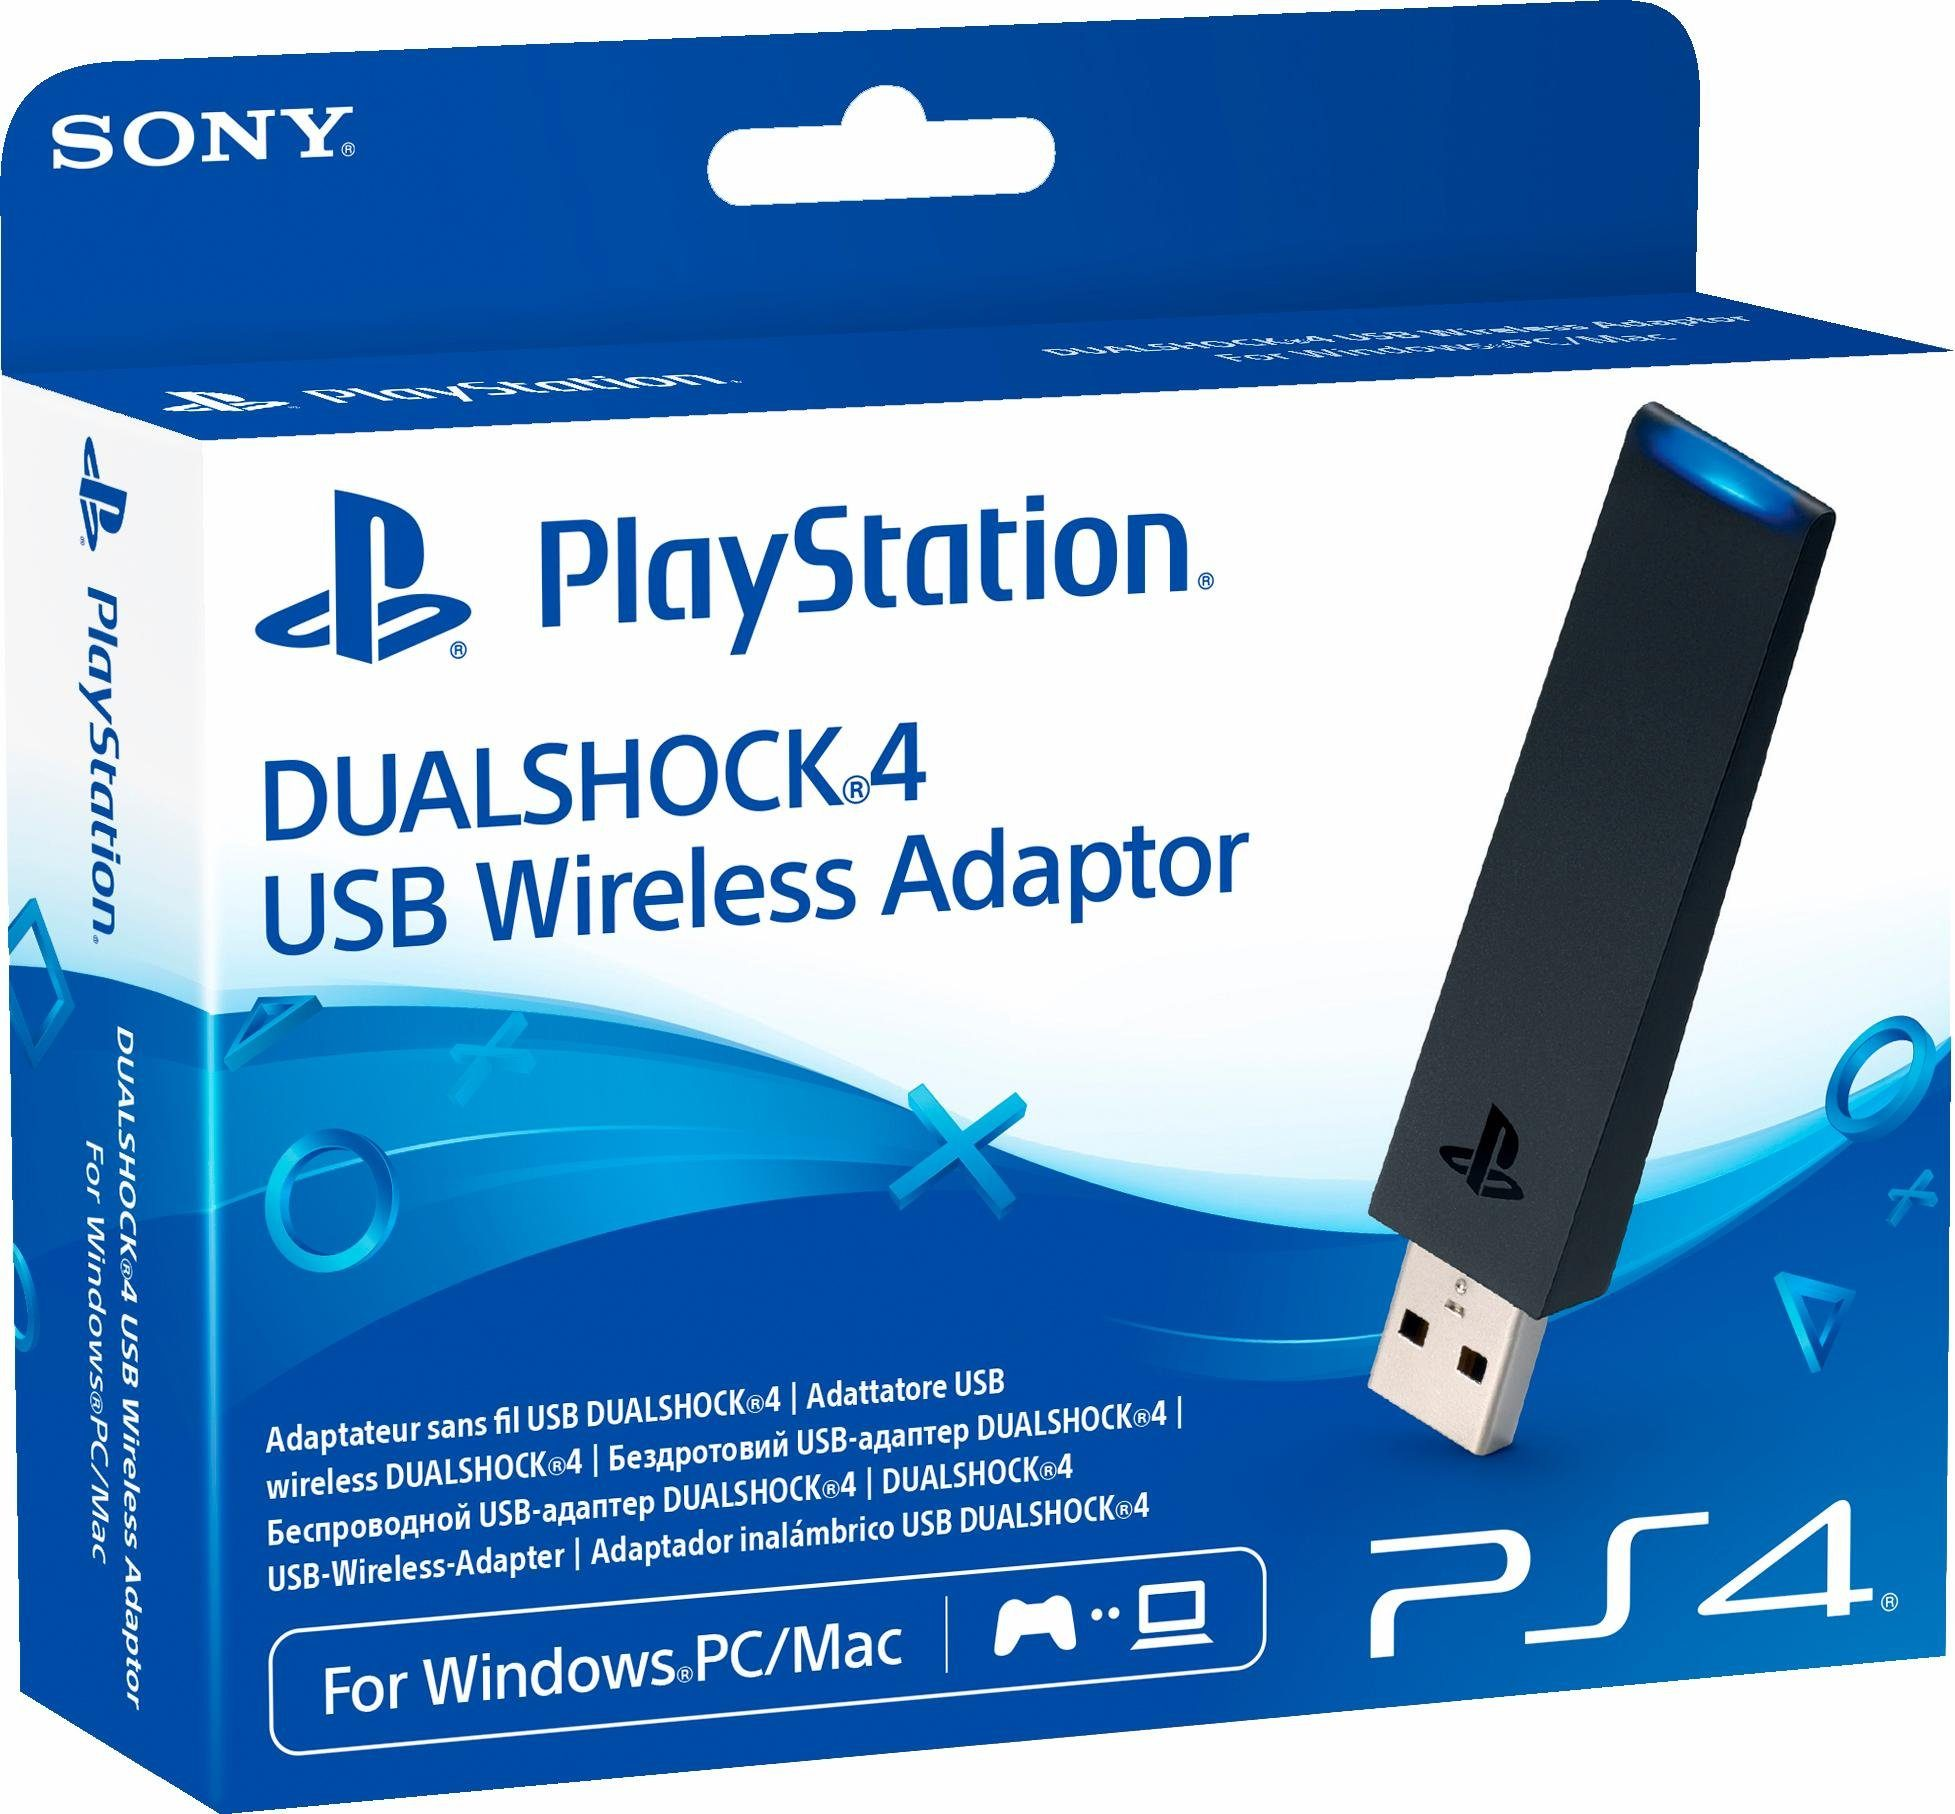 PS4 DUALSHOCK4 USB Wireless Drahtlosadapter